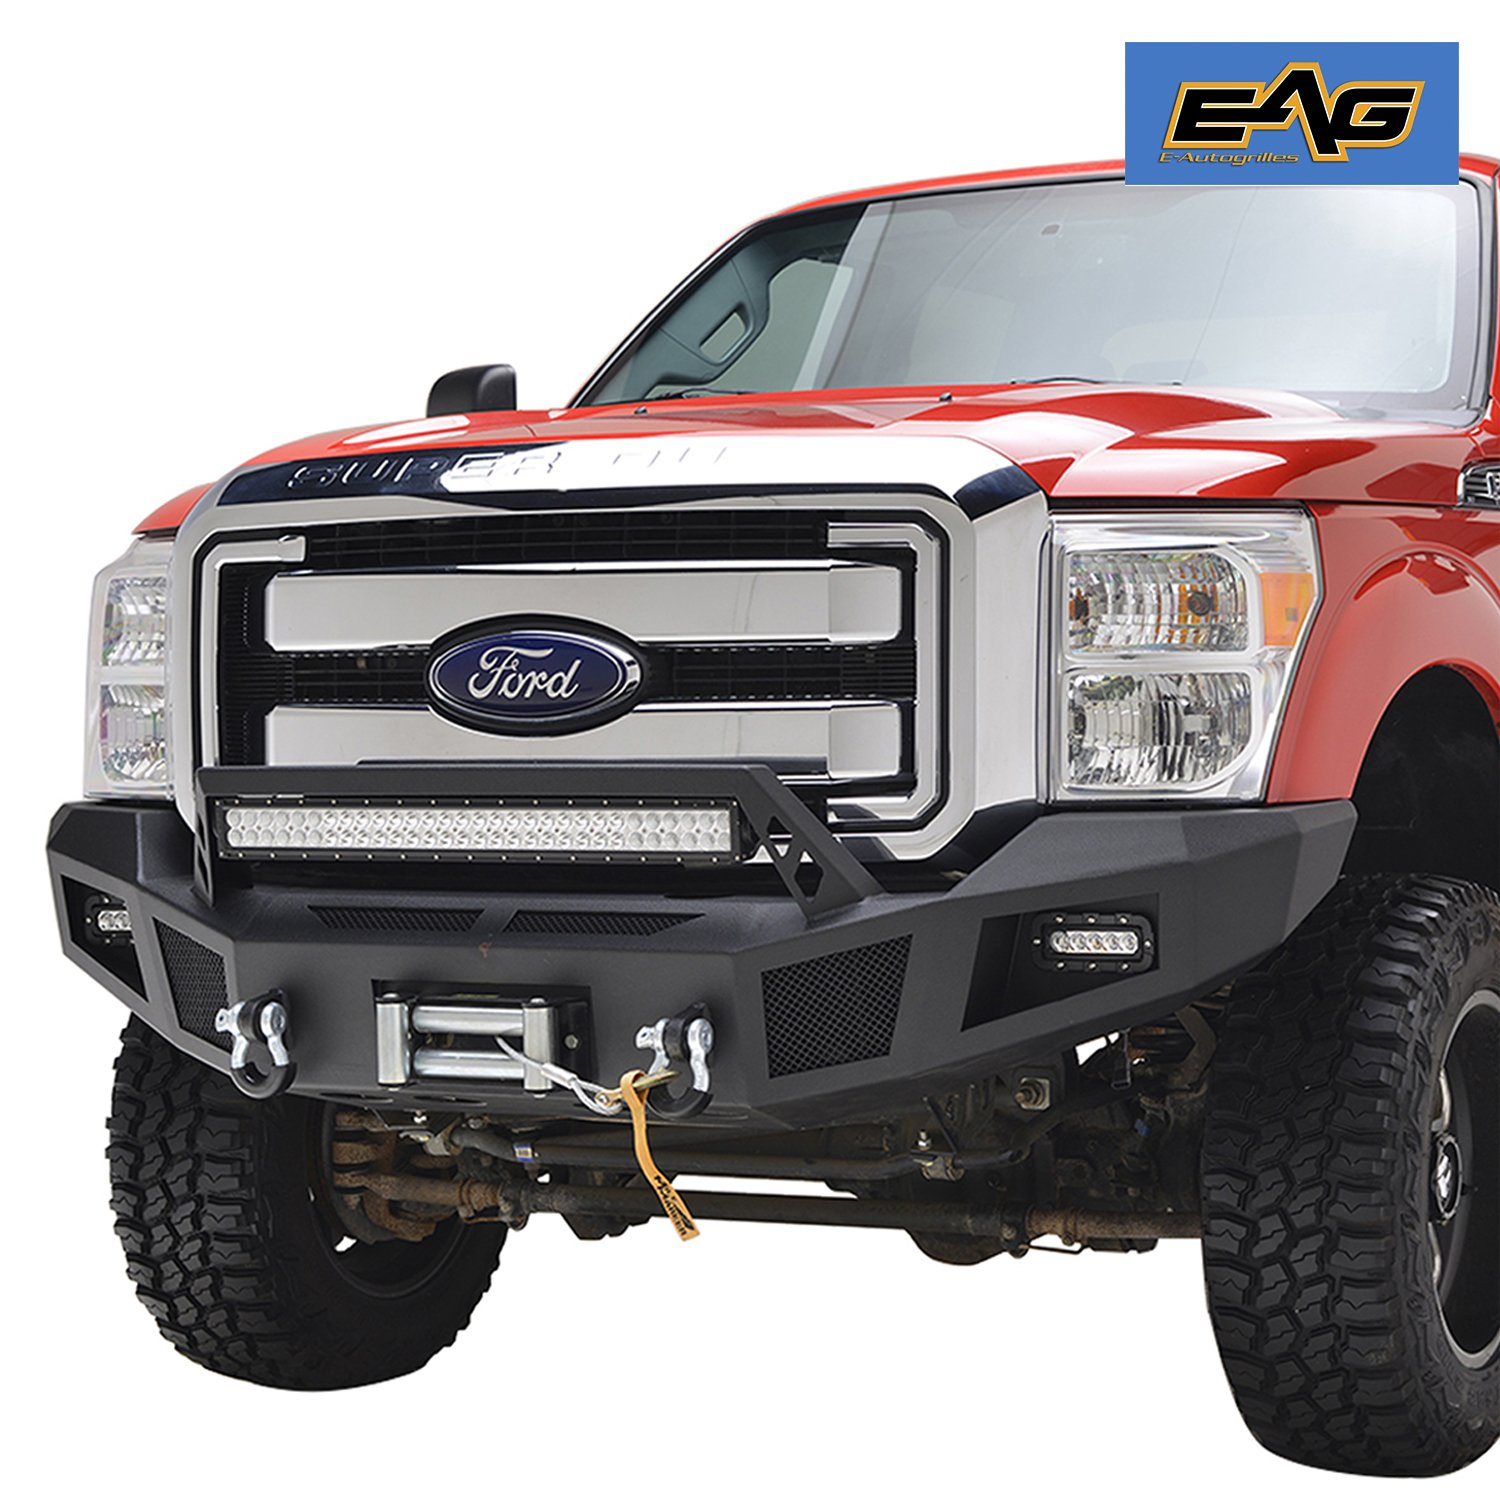 Buy EAG Heavy Duty Front Winch Bumper with LED Lights for 11